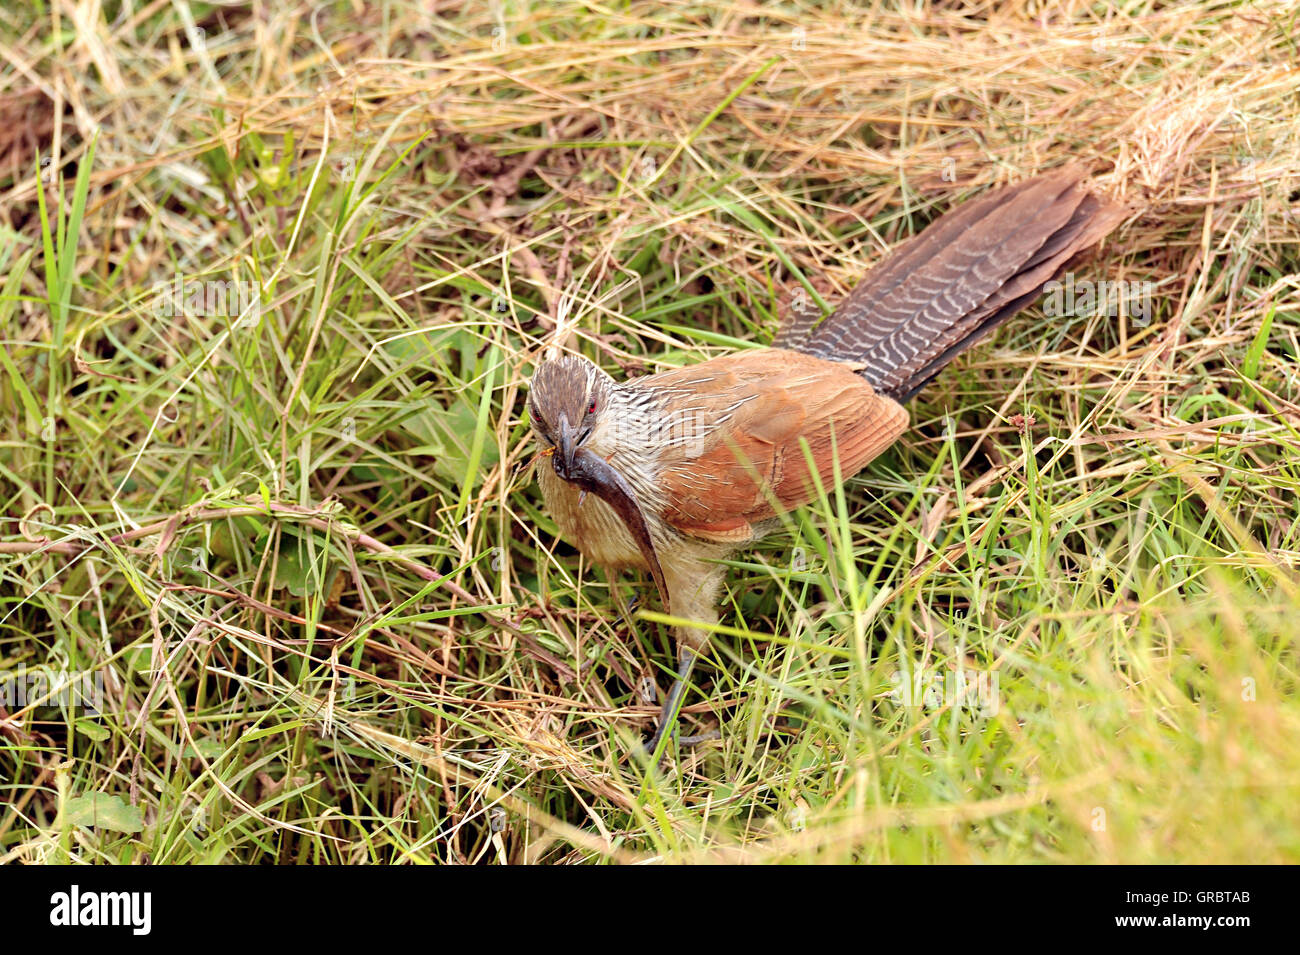 White-Browed Coucal With Small Fish In Its Bill - Stock Image